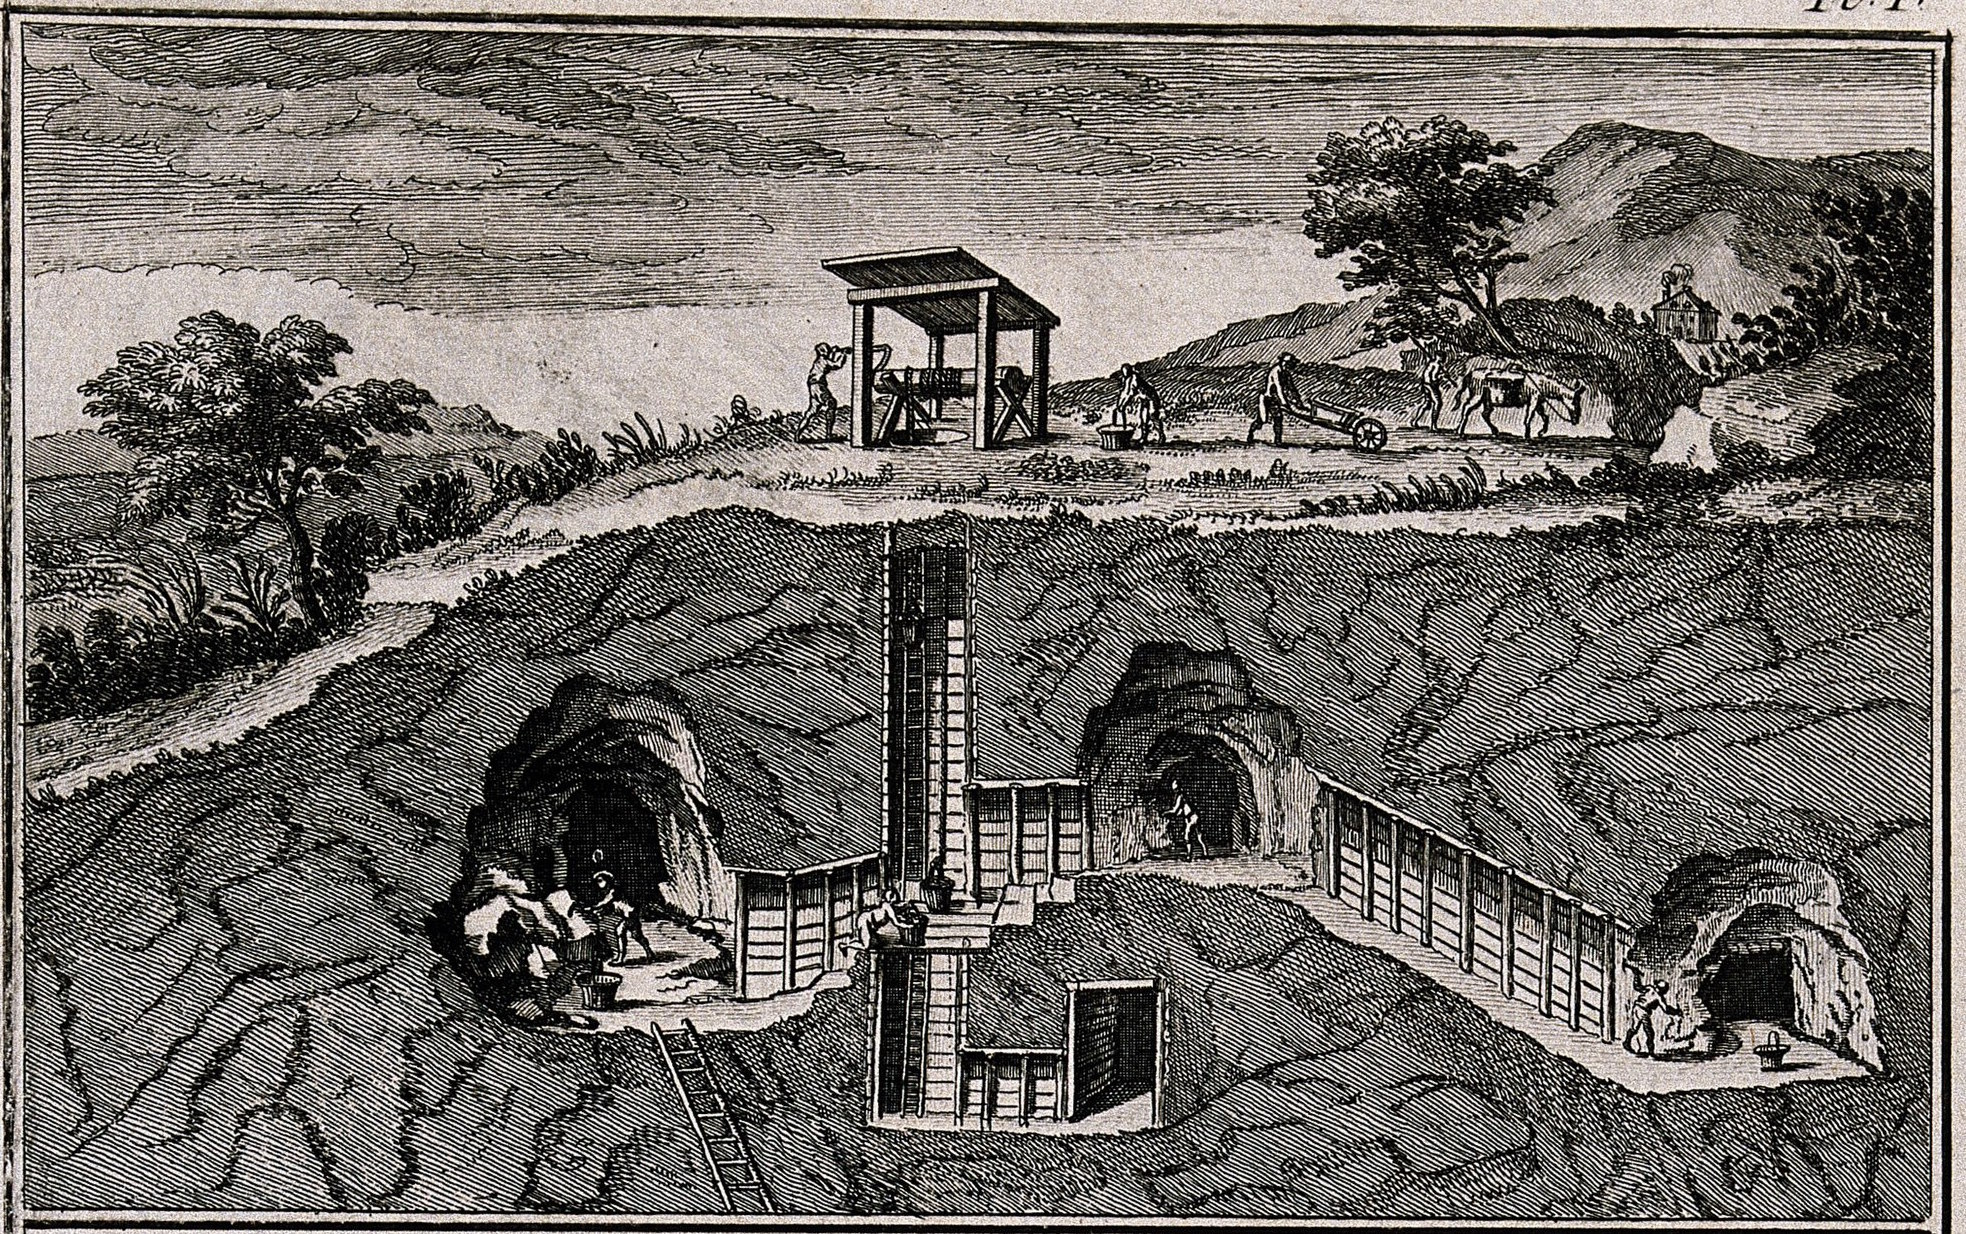 an image showing miners digging underground